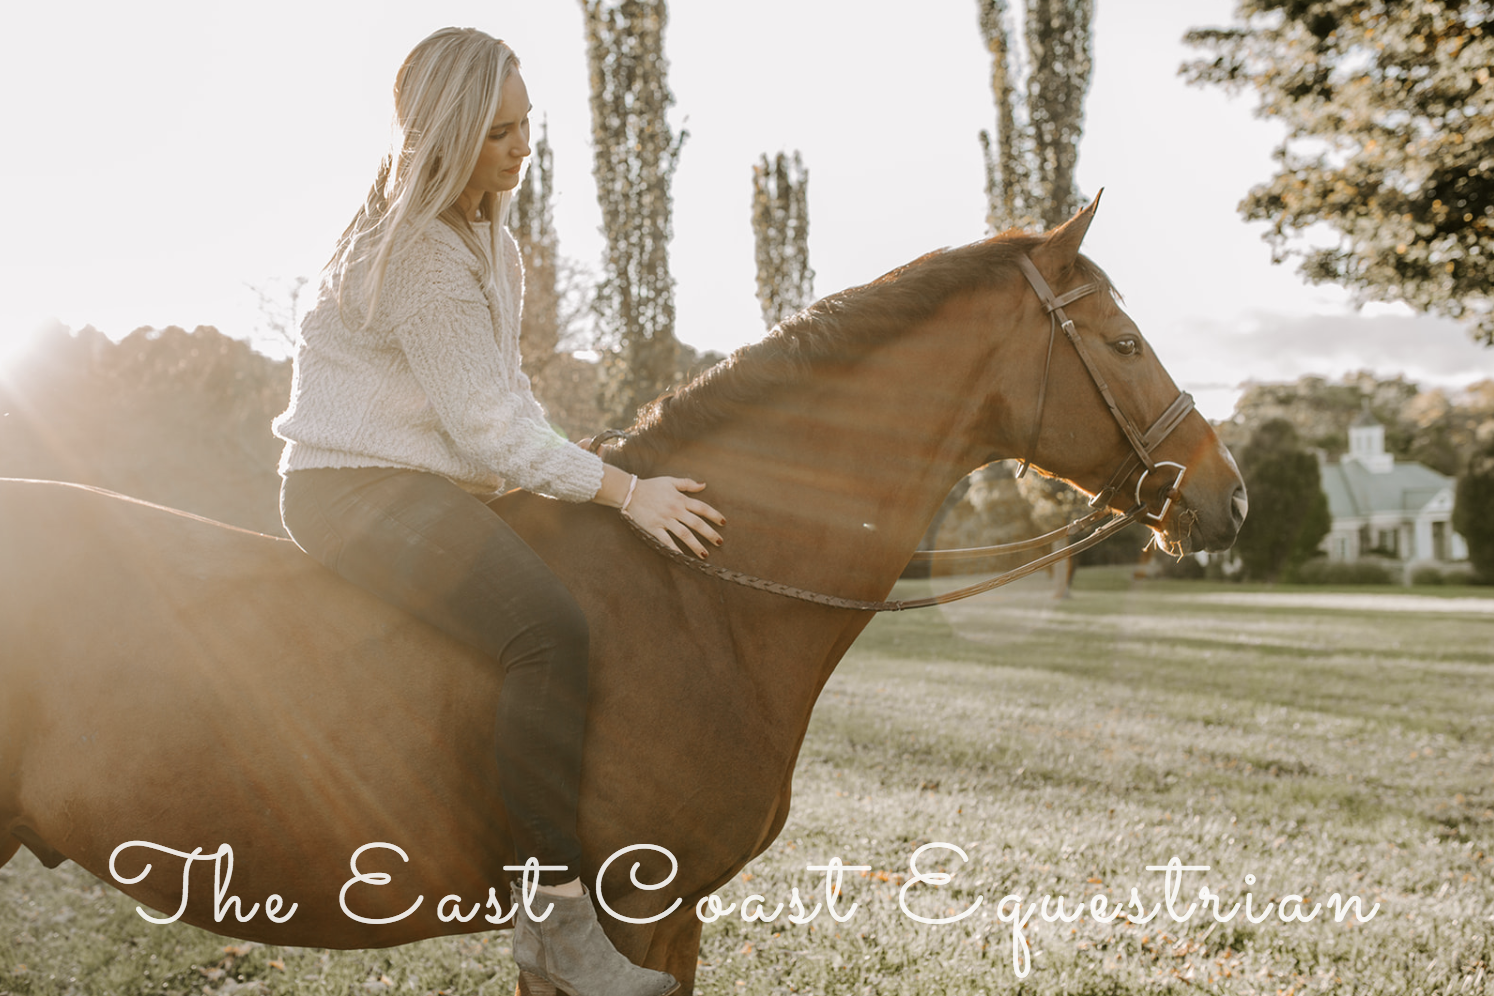 The East Coast Equestrian